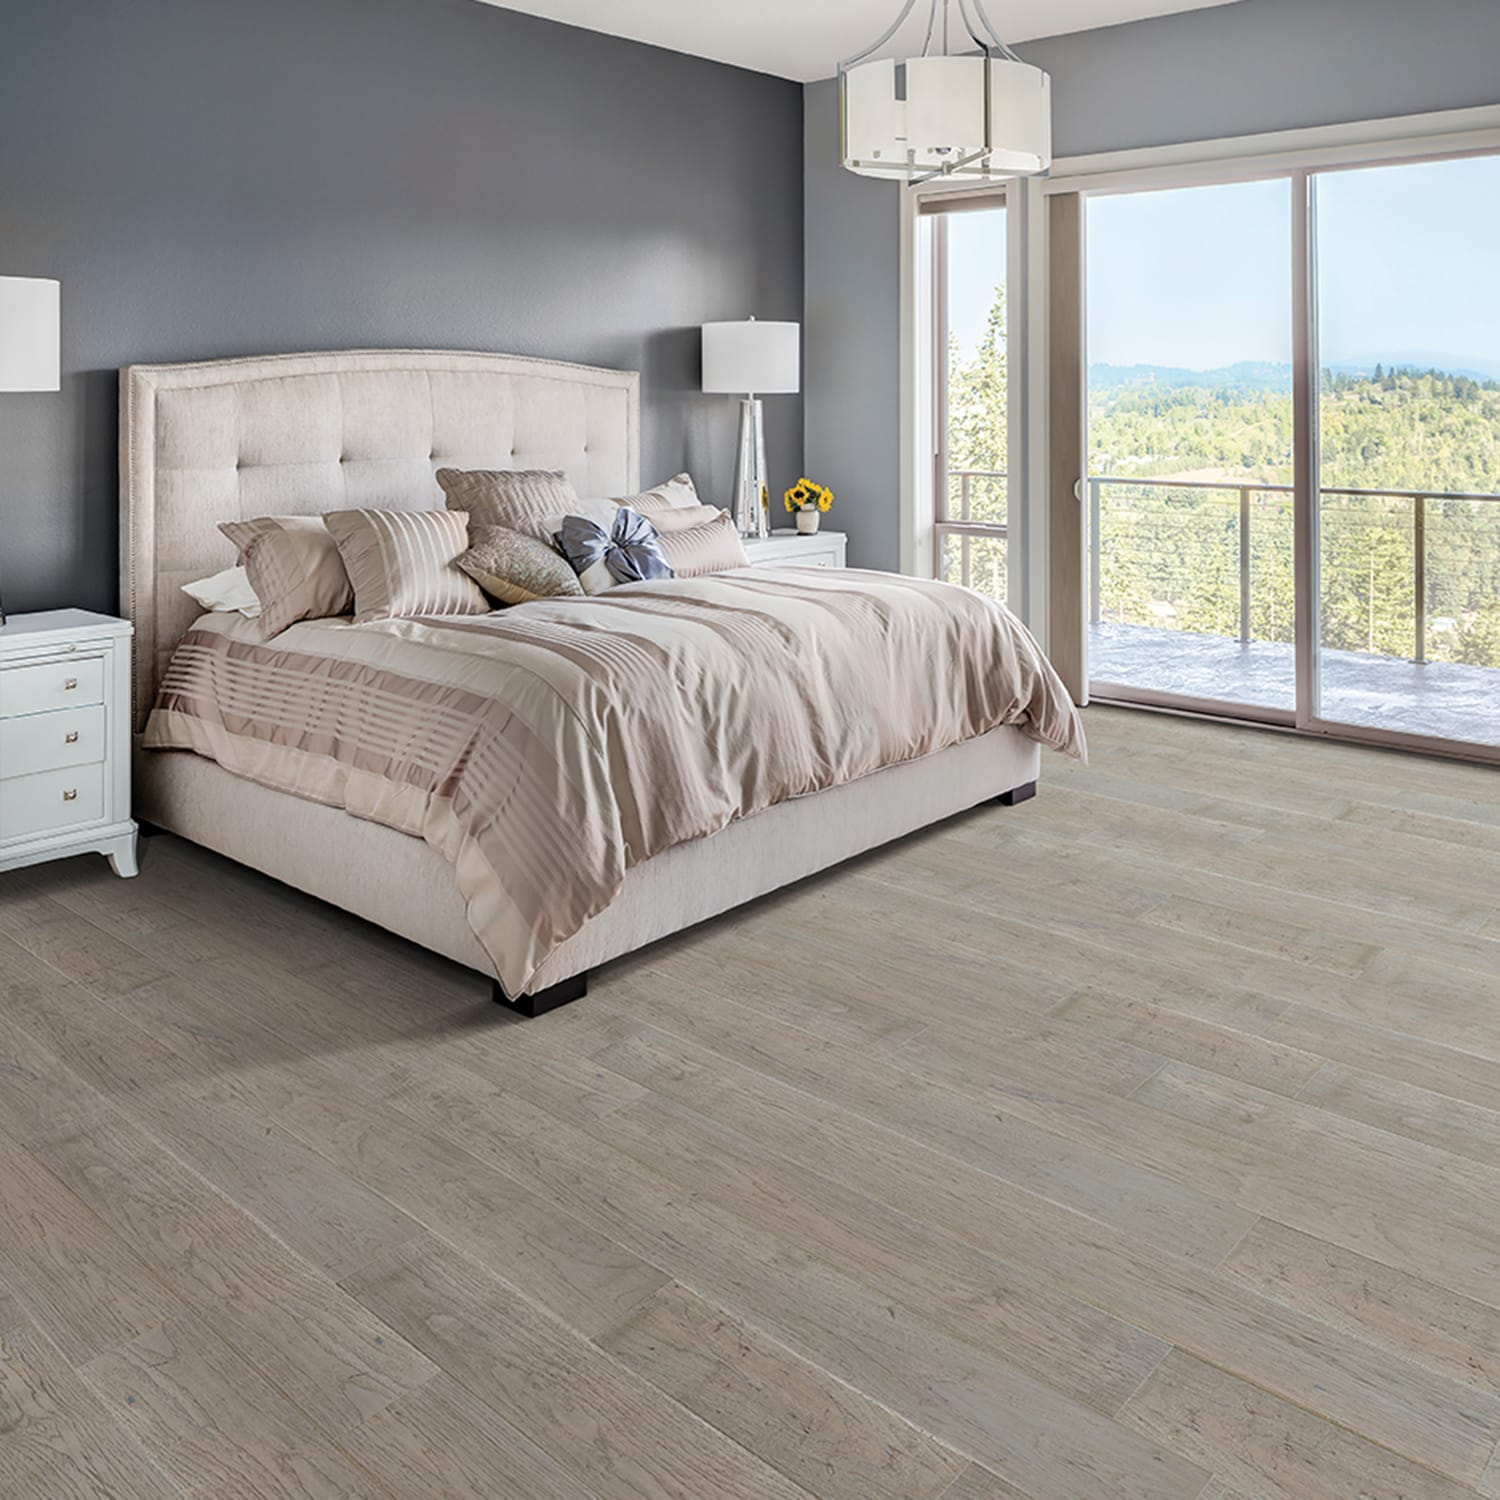 https://hardwoodyourhome.com/wp-content/uploads/2020/03/Flooring-Picture.jpg